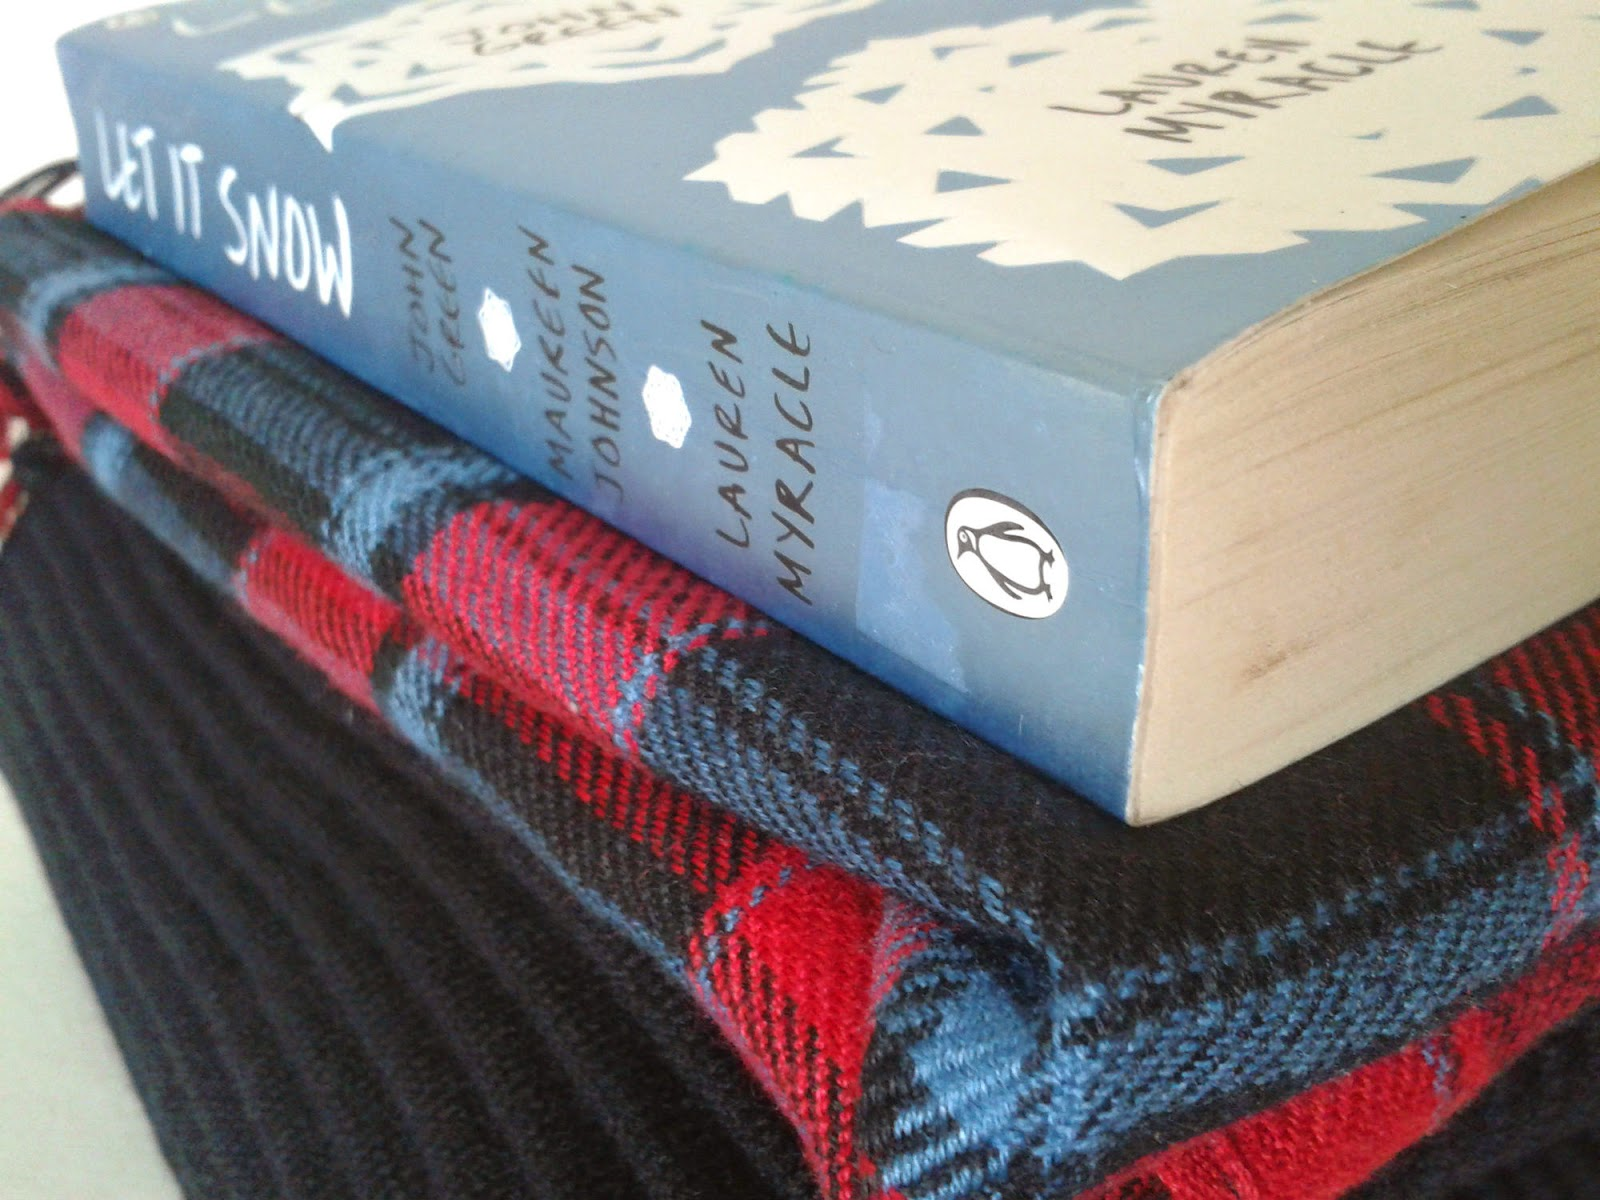 A stack made up of a black ripped jumper, red and blue checkered shirt and a book